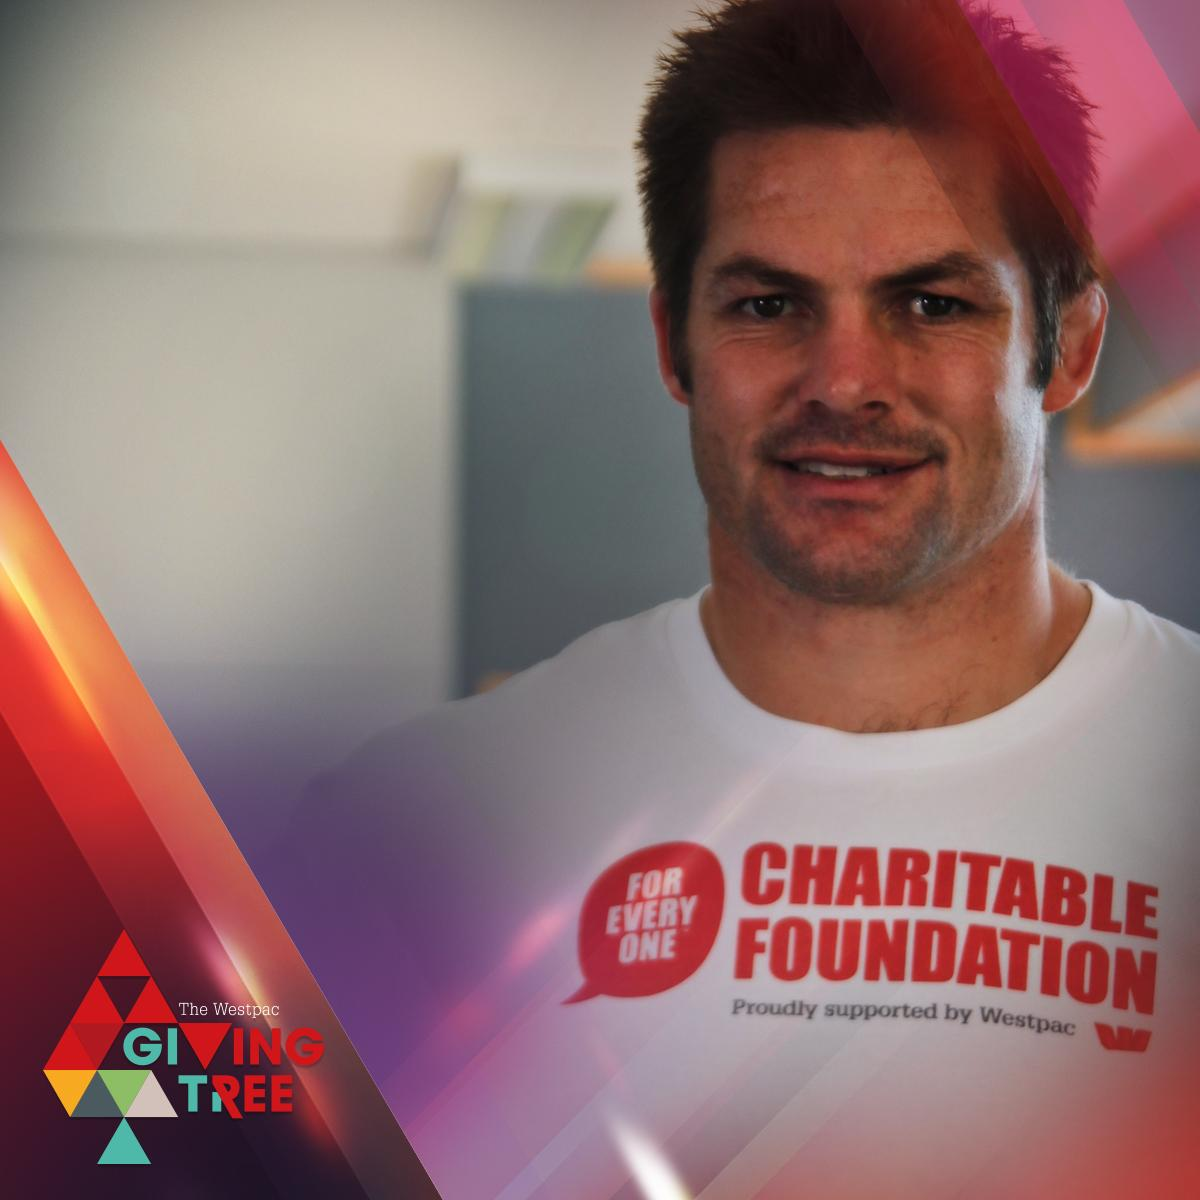 Watch Richie McCaw add the first light to the #GivingTreeNZ on @BreakfastonOne at 8am tomorrow http://t.co/rZUXA0QKAD http://t.co/Gz0JTEZbvQ